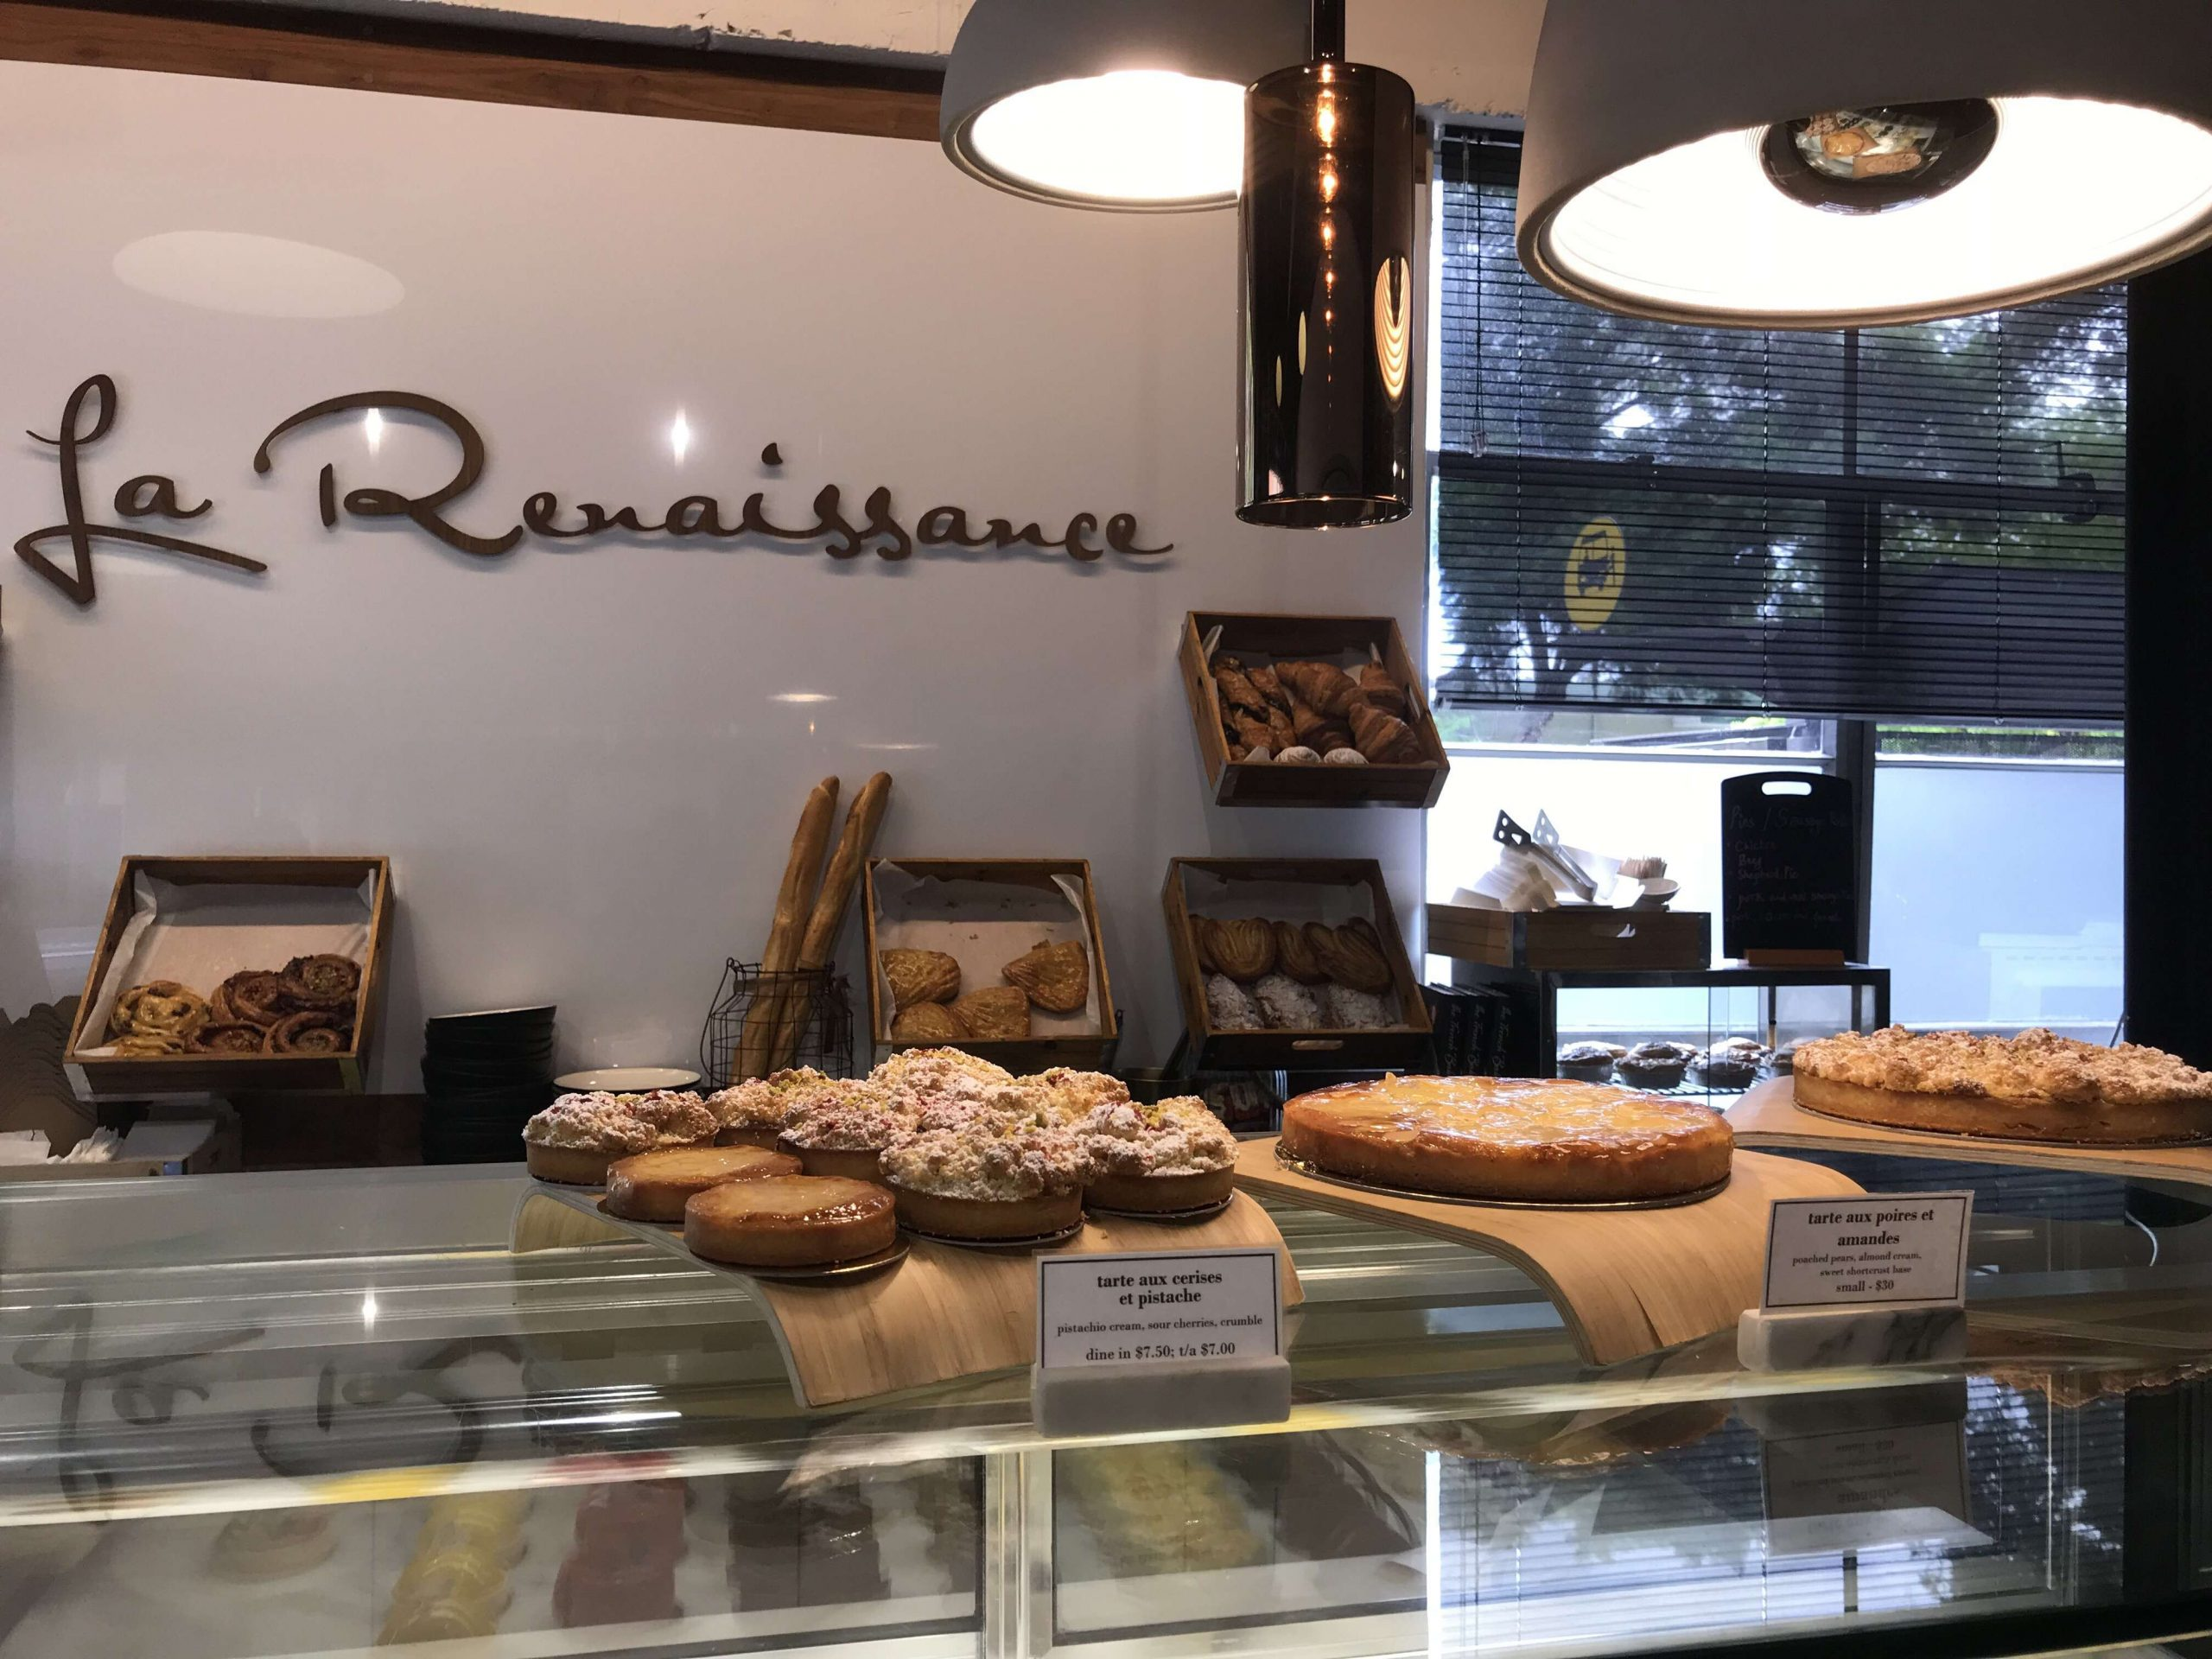 Best bakery in Sydney - baguette